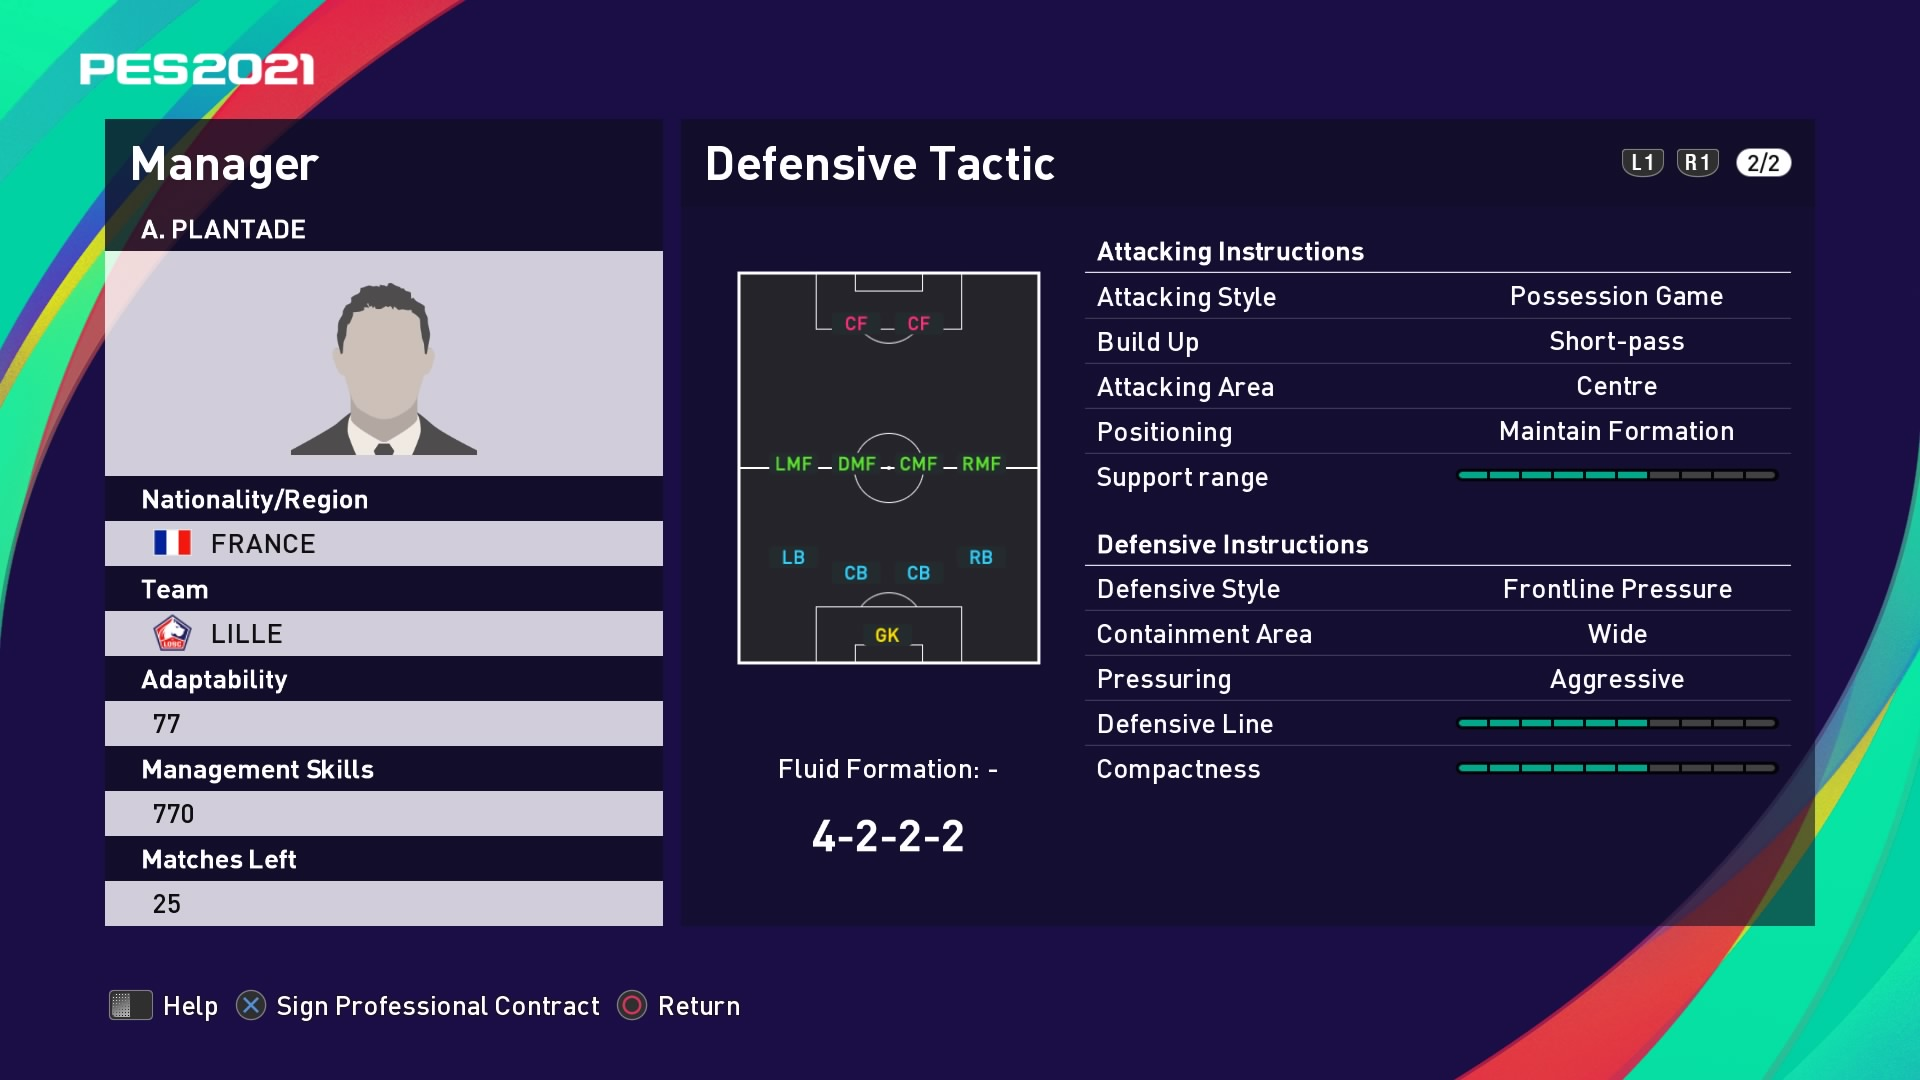 A. Plantade (Christophe Galtier) Defensive Tactic in PES 2021 myClub